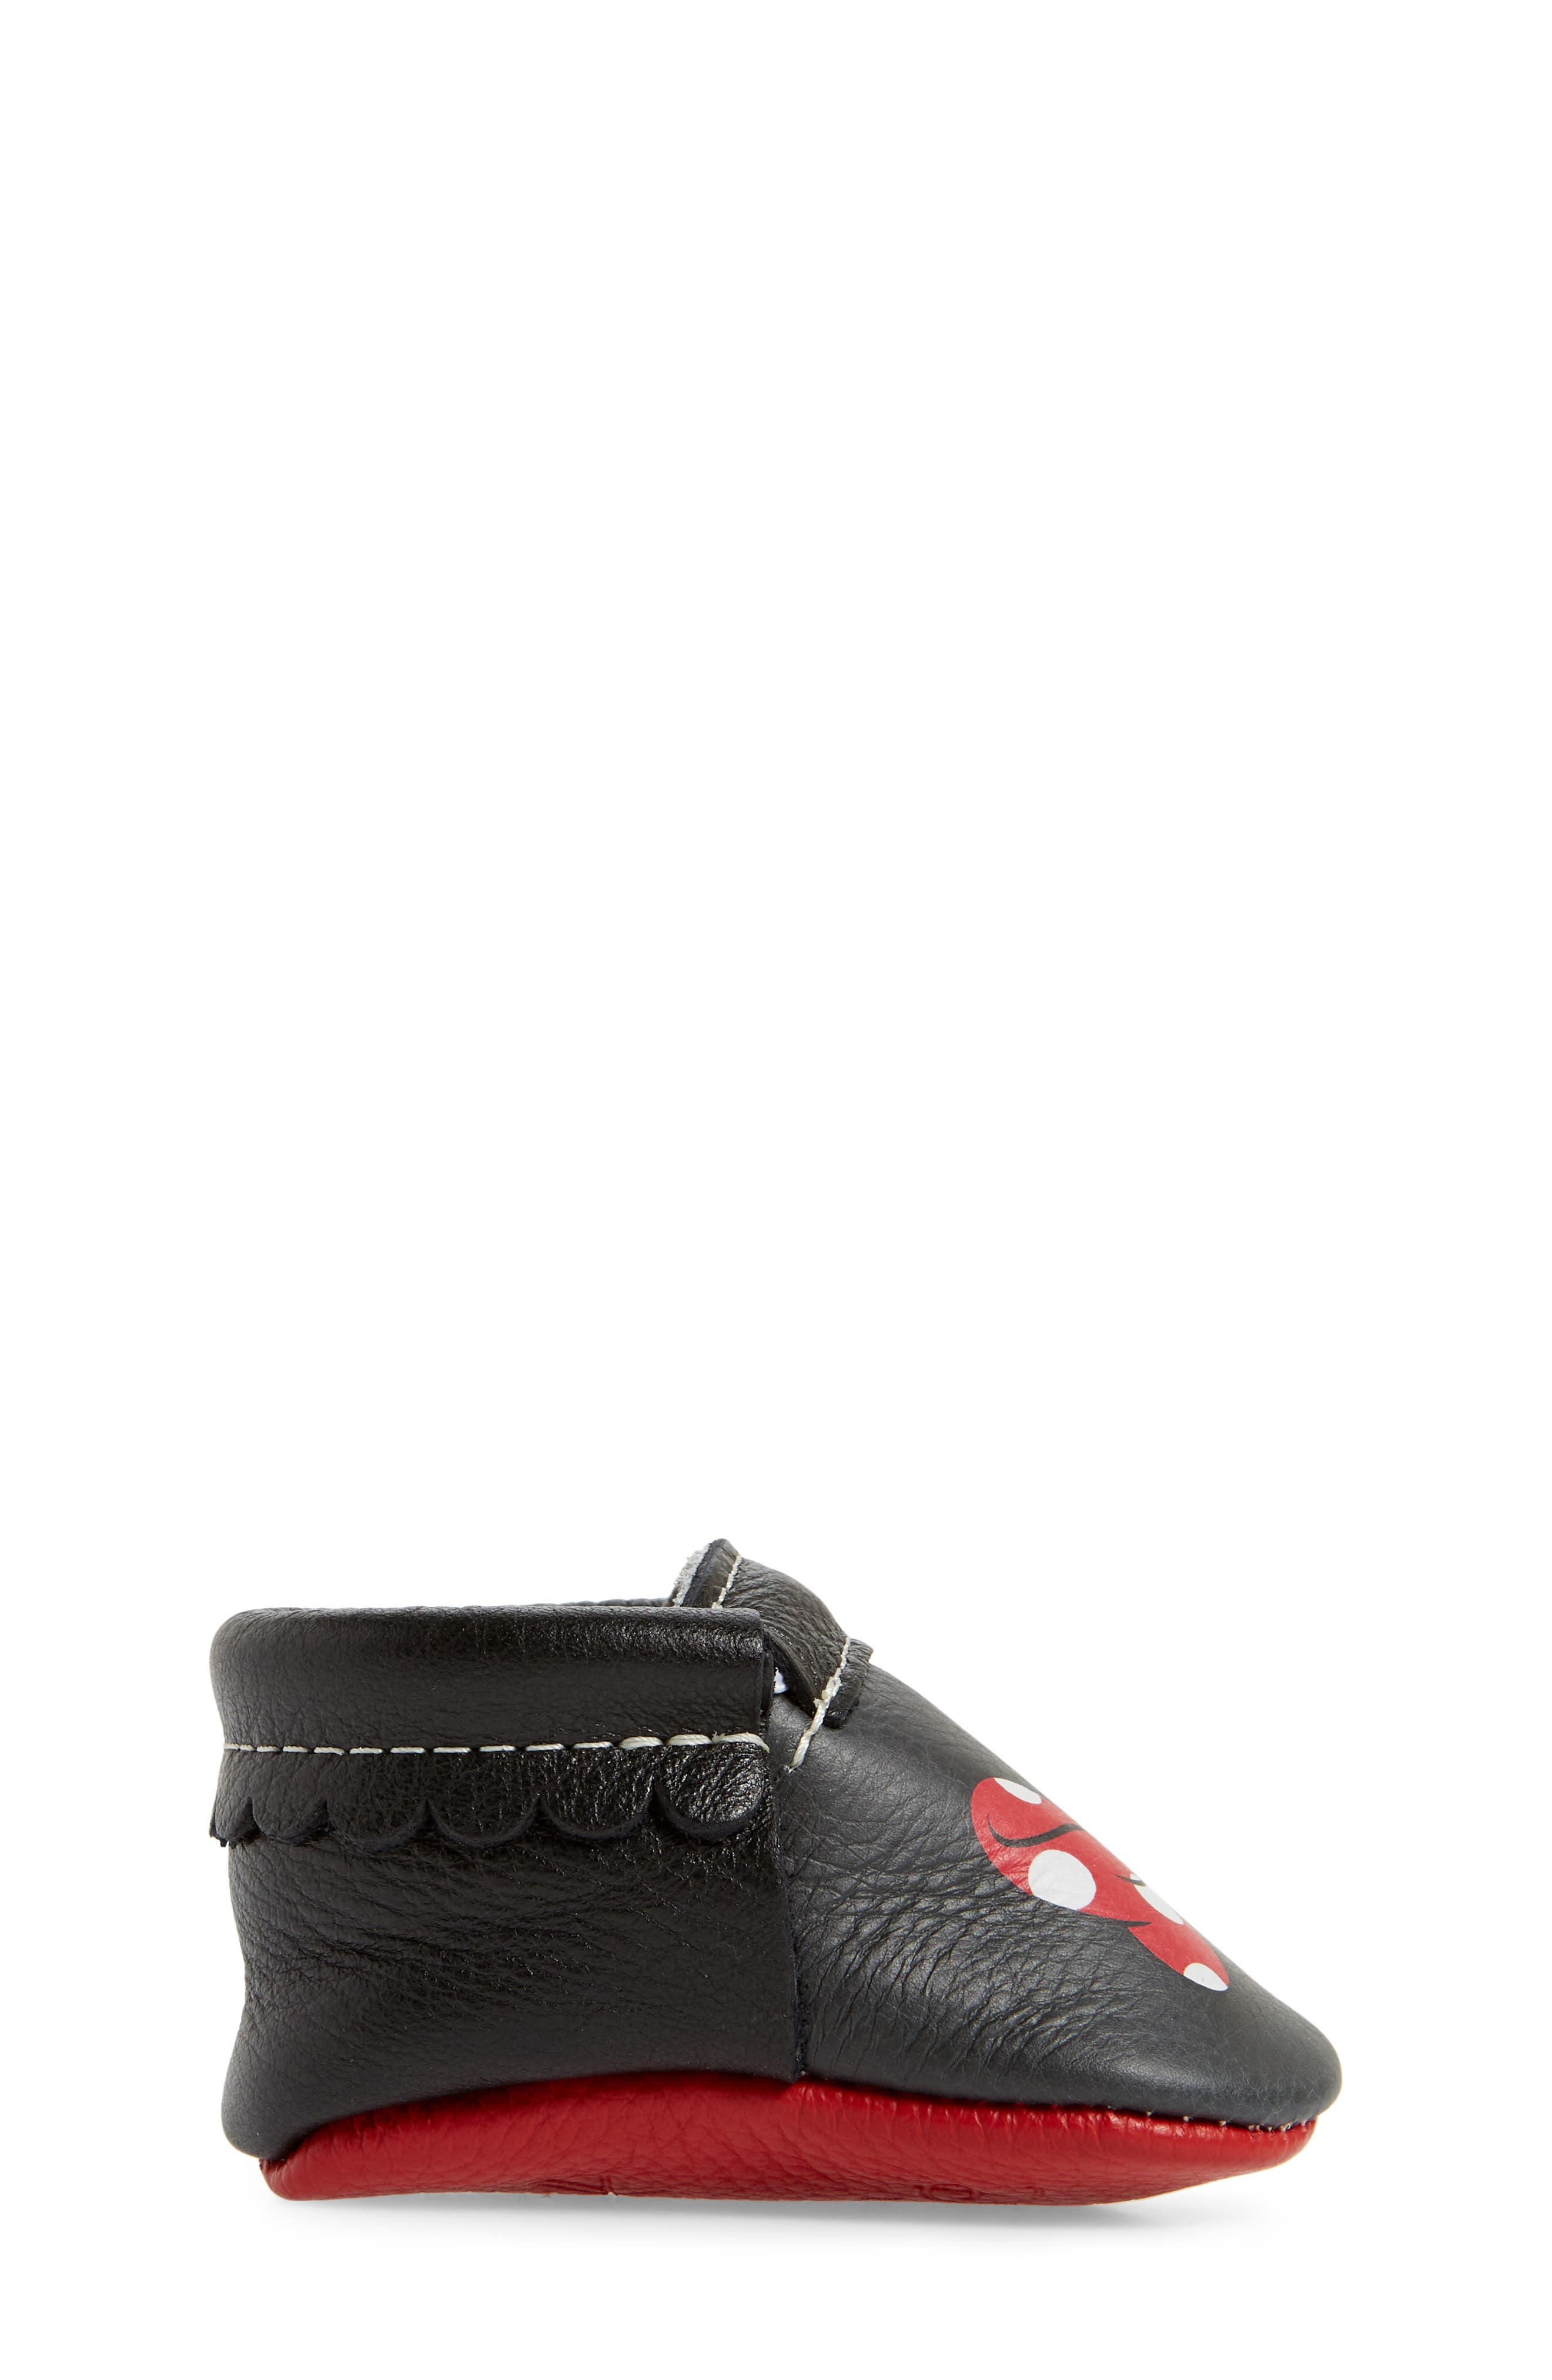 x Disney<sup>®</sup> Baby Minnie Mouse Crib Moccasin,                             Alternate thumbnail 3, color,                             001